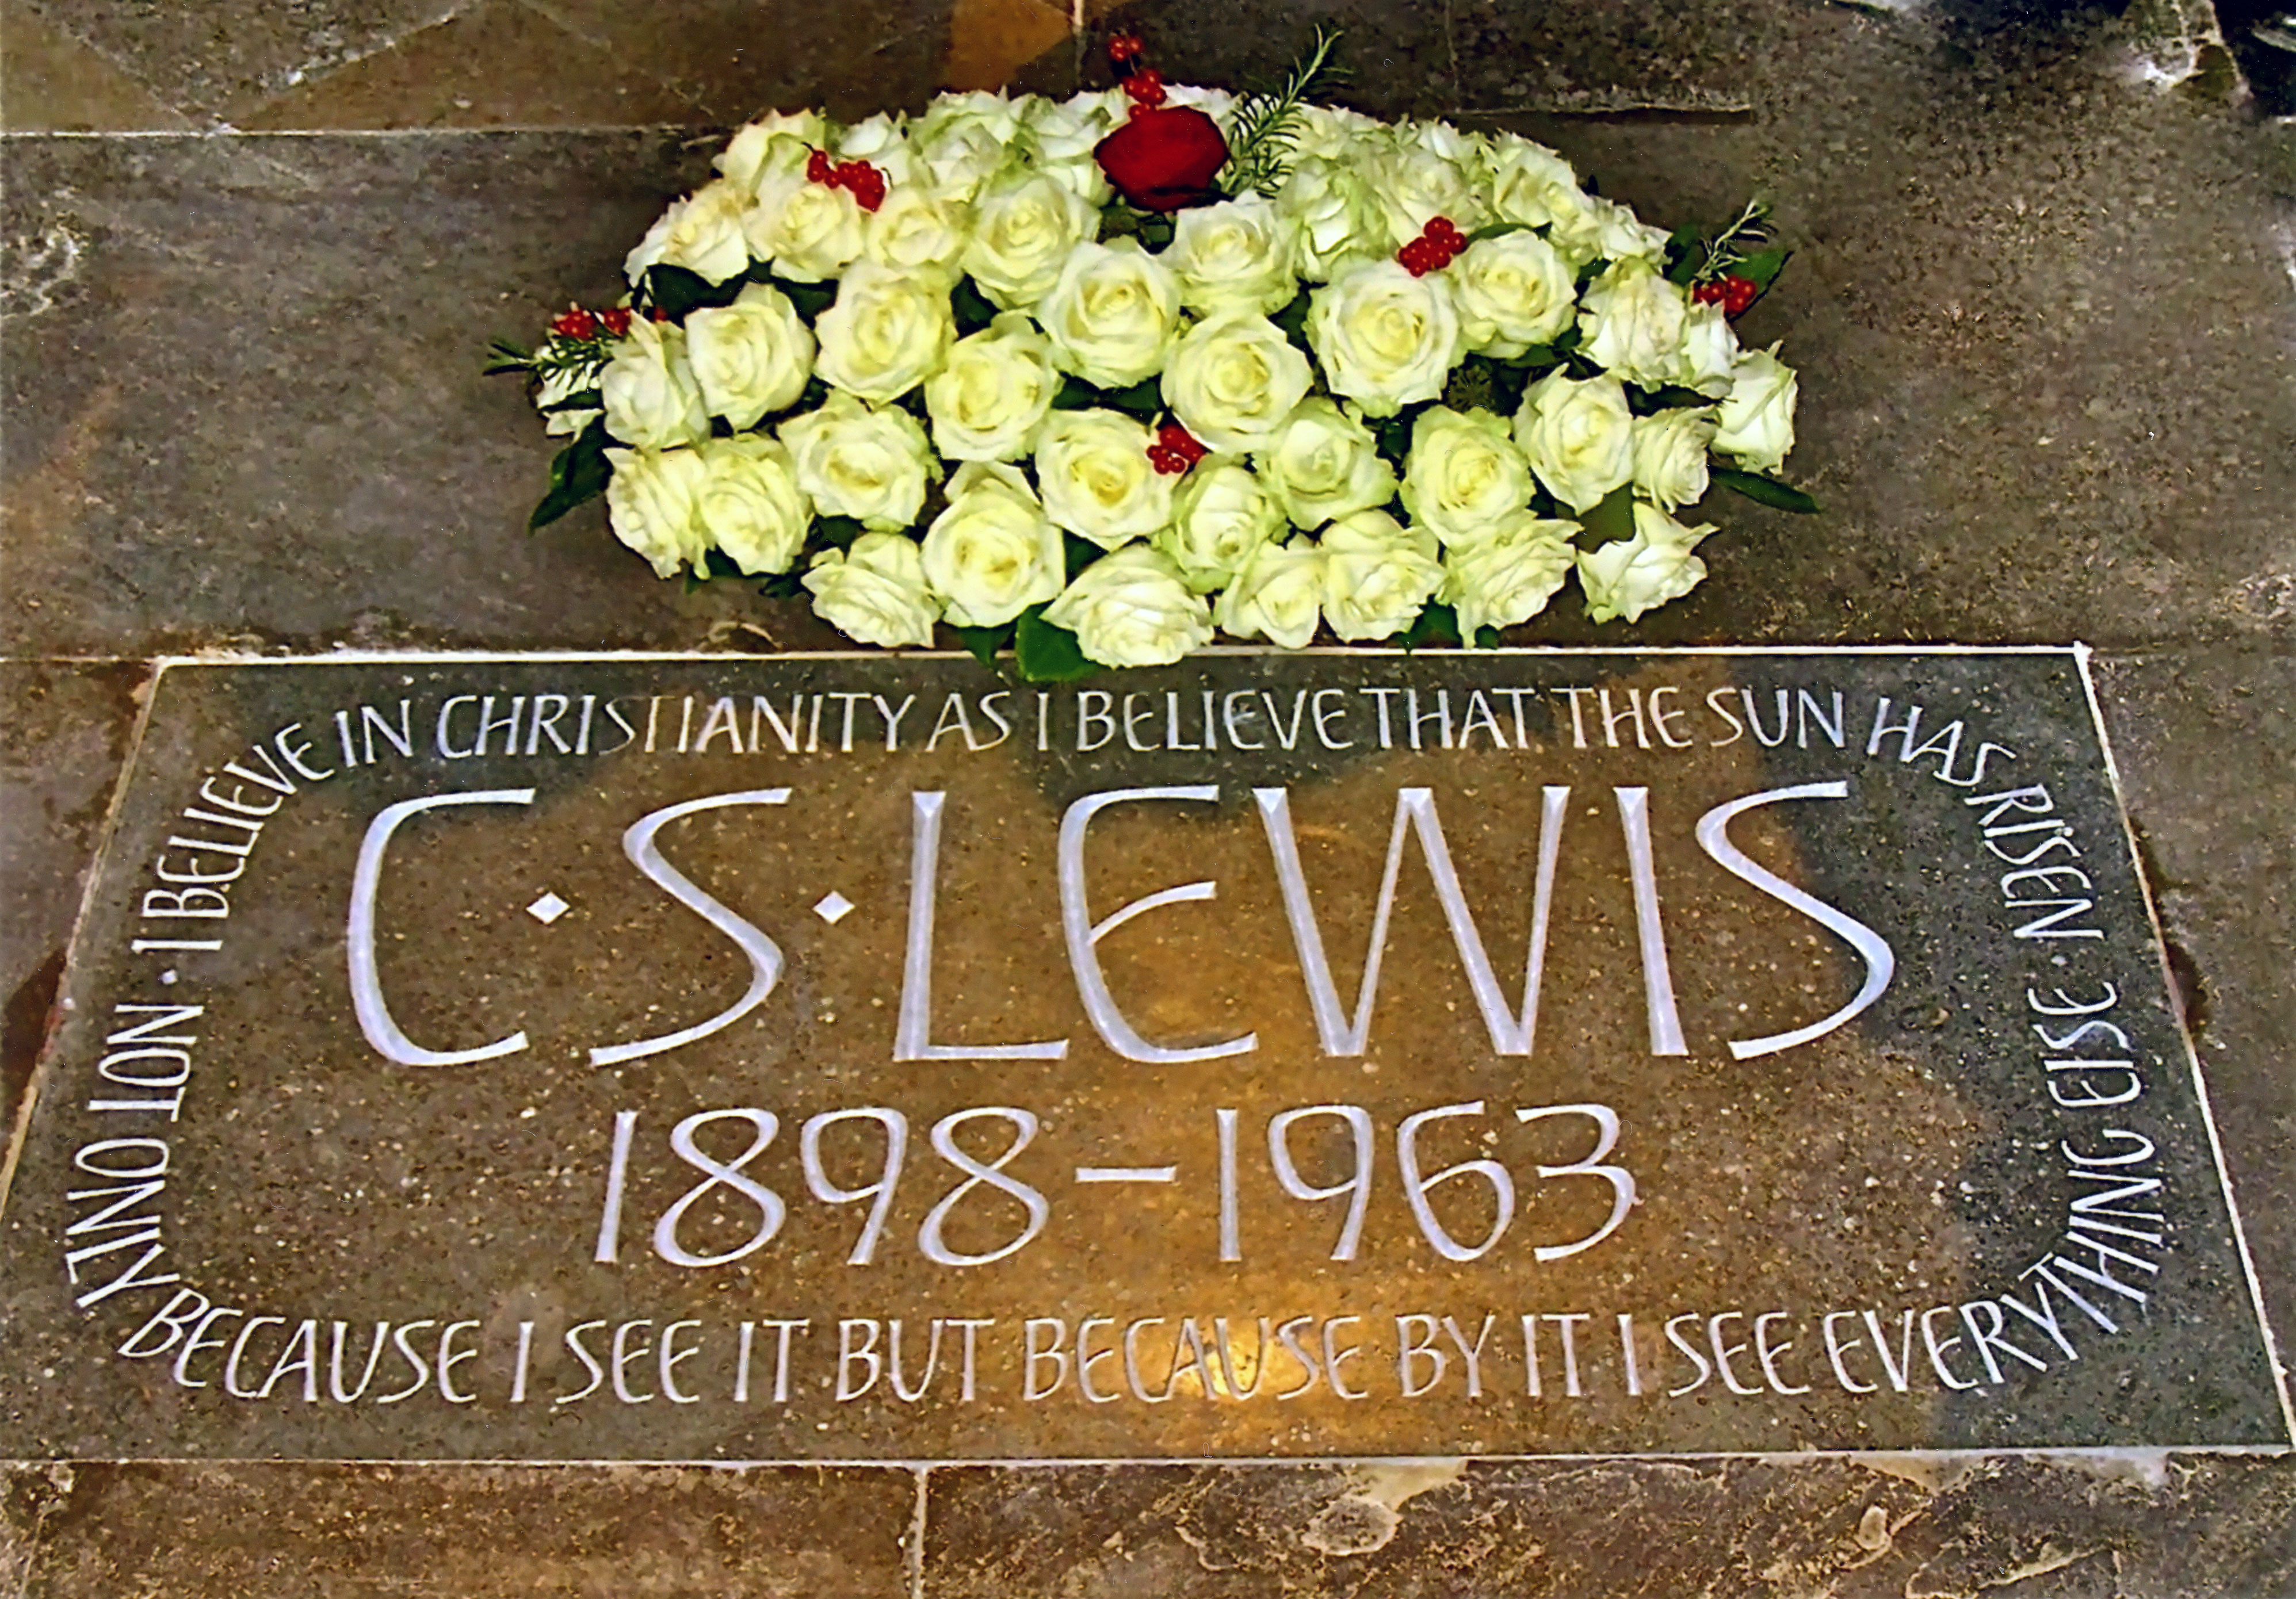 What is the best way to start a research paper on C.S Lewis?